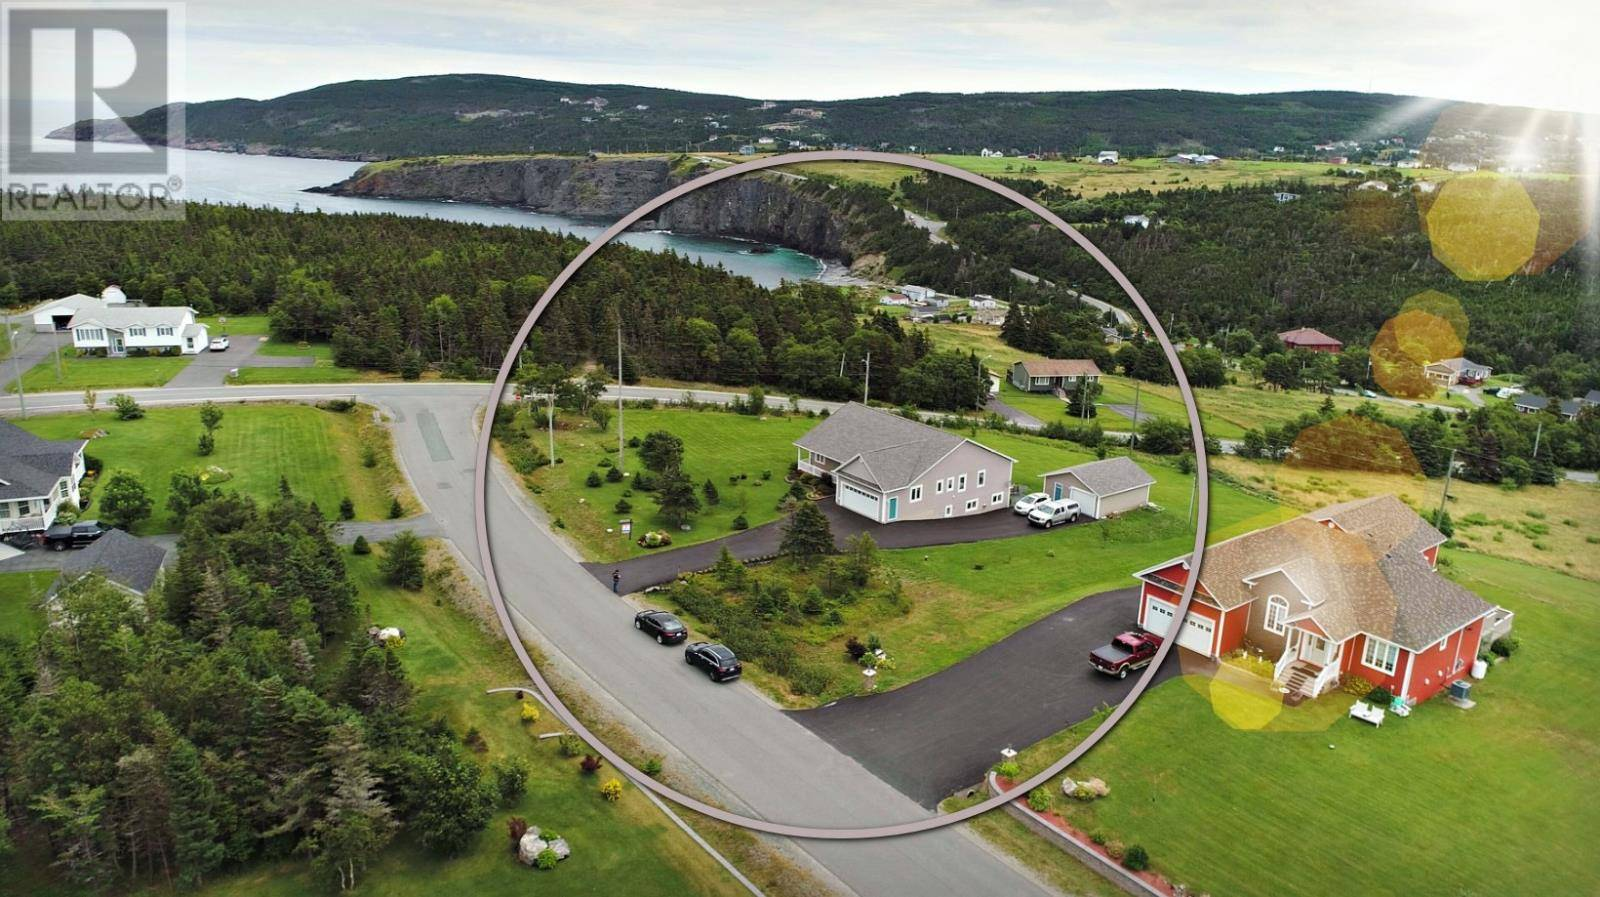 House for sale at 16 Nageira Cres Logy Bay Middle Cove Outer Cove Newfoundland - MLS: 1200920